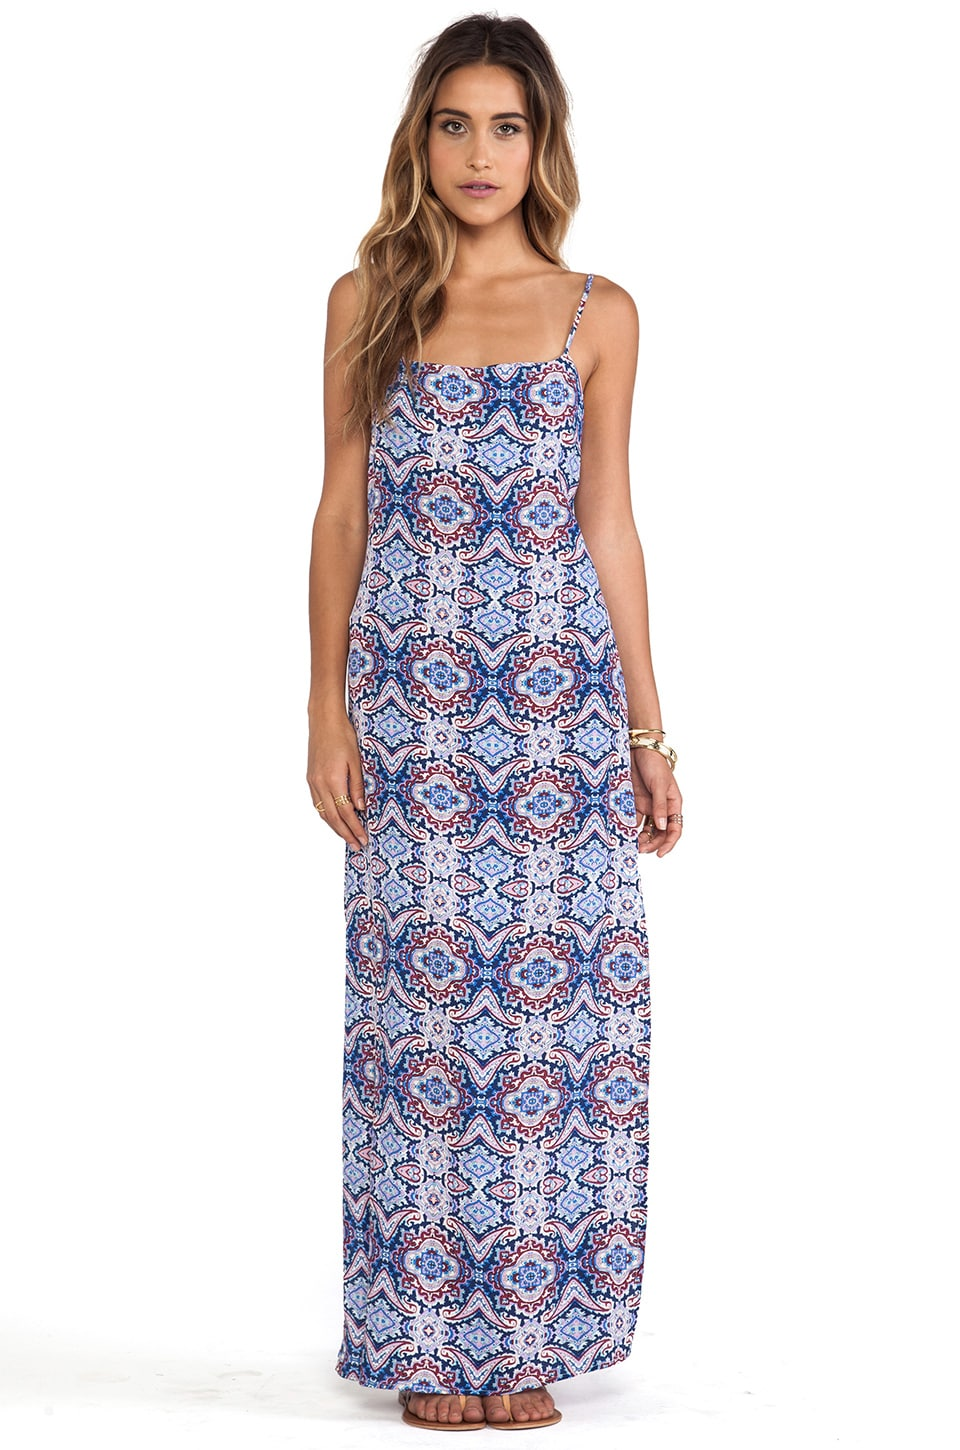 Tigerlily Vienne Slip Dress in Paisley